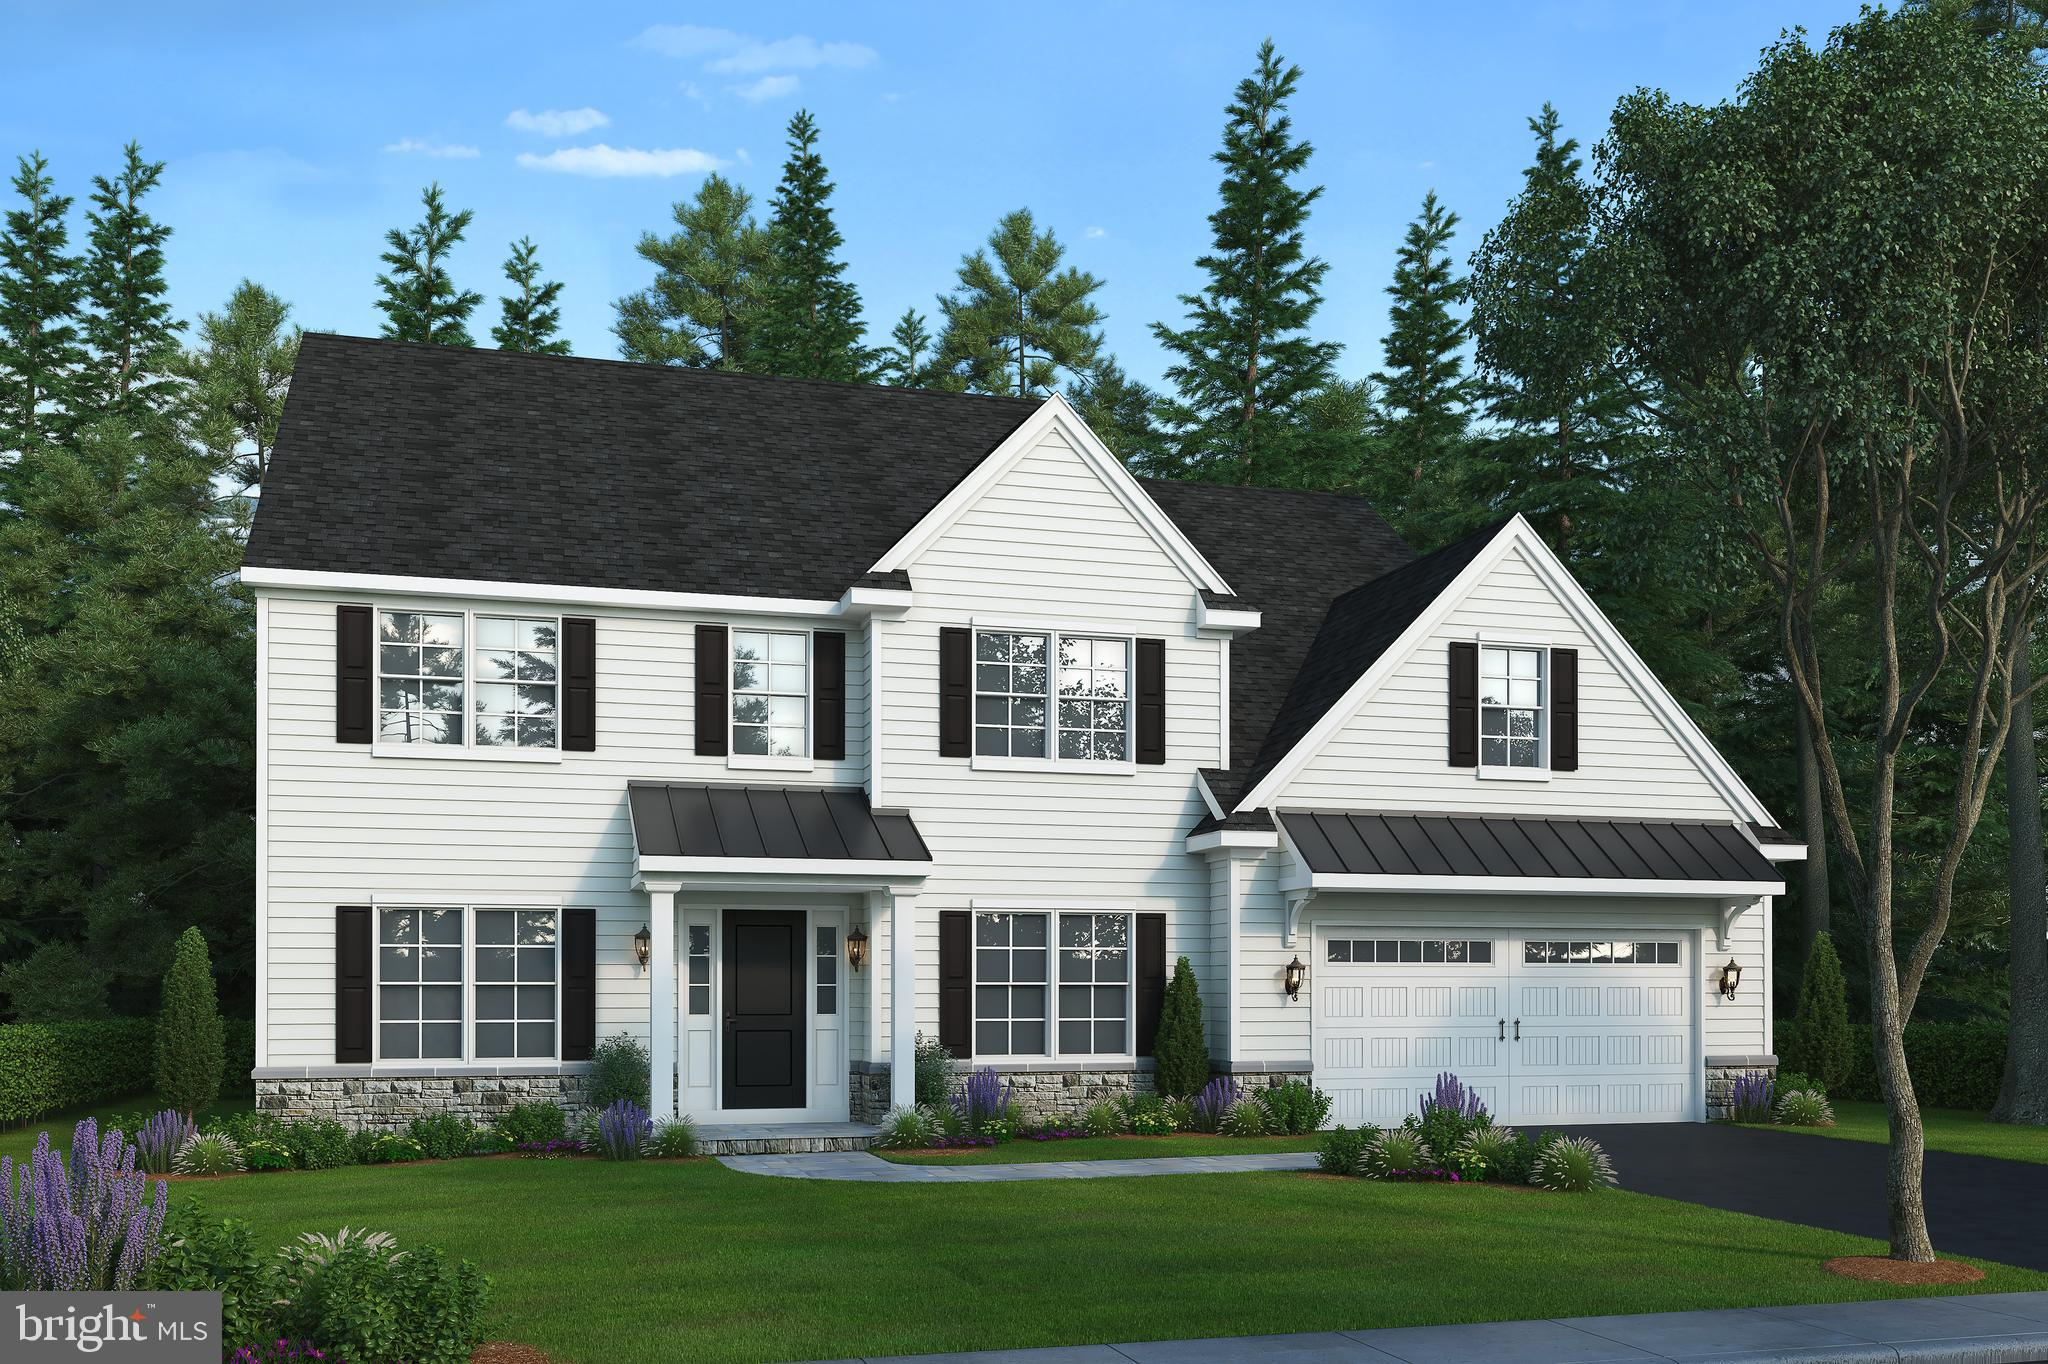 Introducing Goshen Walk! 11 semi-custom homes on a cul-de-sac street located in the heart of West Goshen Township in the award-winning West Chester School District. Lot #1 is a Providence Traditional Model with 4 bedrooms 2.5 baths a 2car garage with 3145 square feet of living space. The Providence Model features an over-sized kitchen and breakfast area opening to a spacious family room with gas fireplace. These two rooms encompass the entire back of the home offering a wonderful space for gatherings and entertainment. Formal dining room and professional office off of the center hall foyer. There is a large family entrance off of the garage with a large walk in closet. The second floor includes four large bedrooms all with walk-in closets, a large hall bath and second floor laundry room. The massive owner's suite includes two walk-in closets and a luxurious master bath with pedestal tub and walk in shower. All of the homes at Goshen Walk can be customized to fit your style and needs. Public water, public sewer, and natural gas heating and cooking all included. Goshen Walk is conveniently located just minutes from downtown West Chester and minutes to Route 202 with easy access to Philadelphia, King of Prussia, and Wilmington.